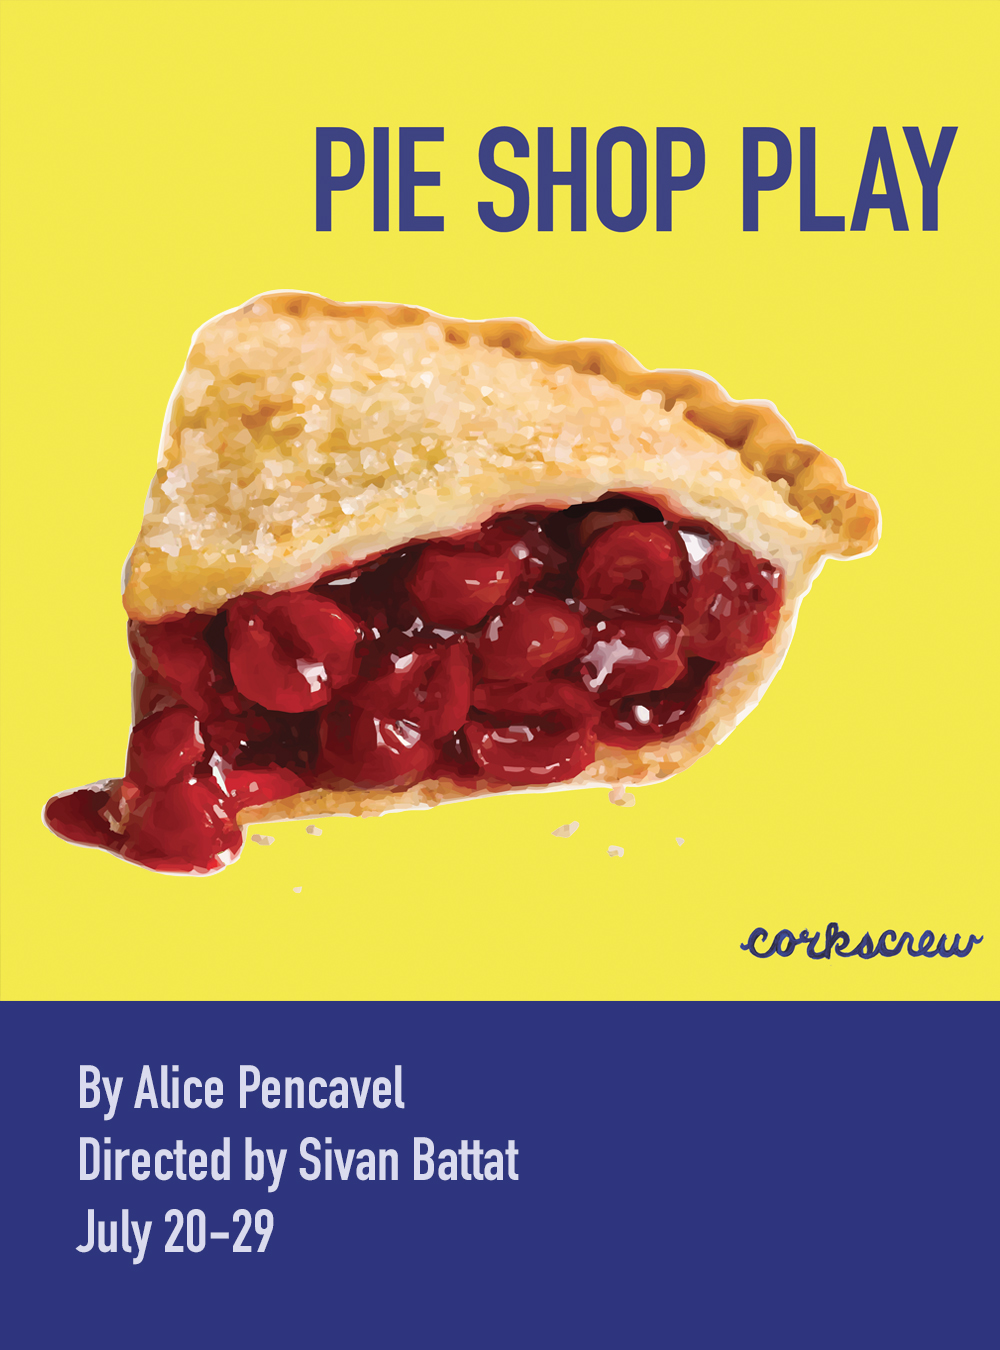 Agnes and Kitty -- the pie shop sisters - have big dreams. But when a pipe bursts, leaking toxic unknowns that flood the shop and rob them of coherent speech, they are forced to contend with a past that still haunts and divides them. Pie Shop Play reveals the havoc that trauma brings down in the name of pie.    MORE INFORMATION